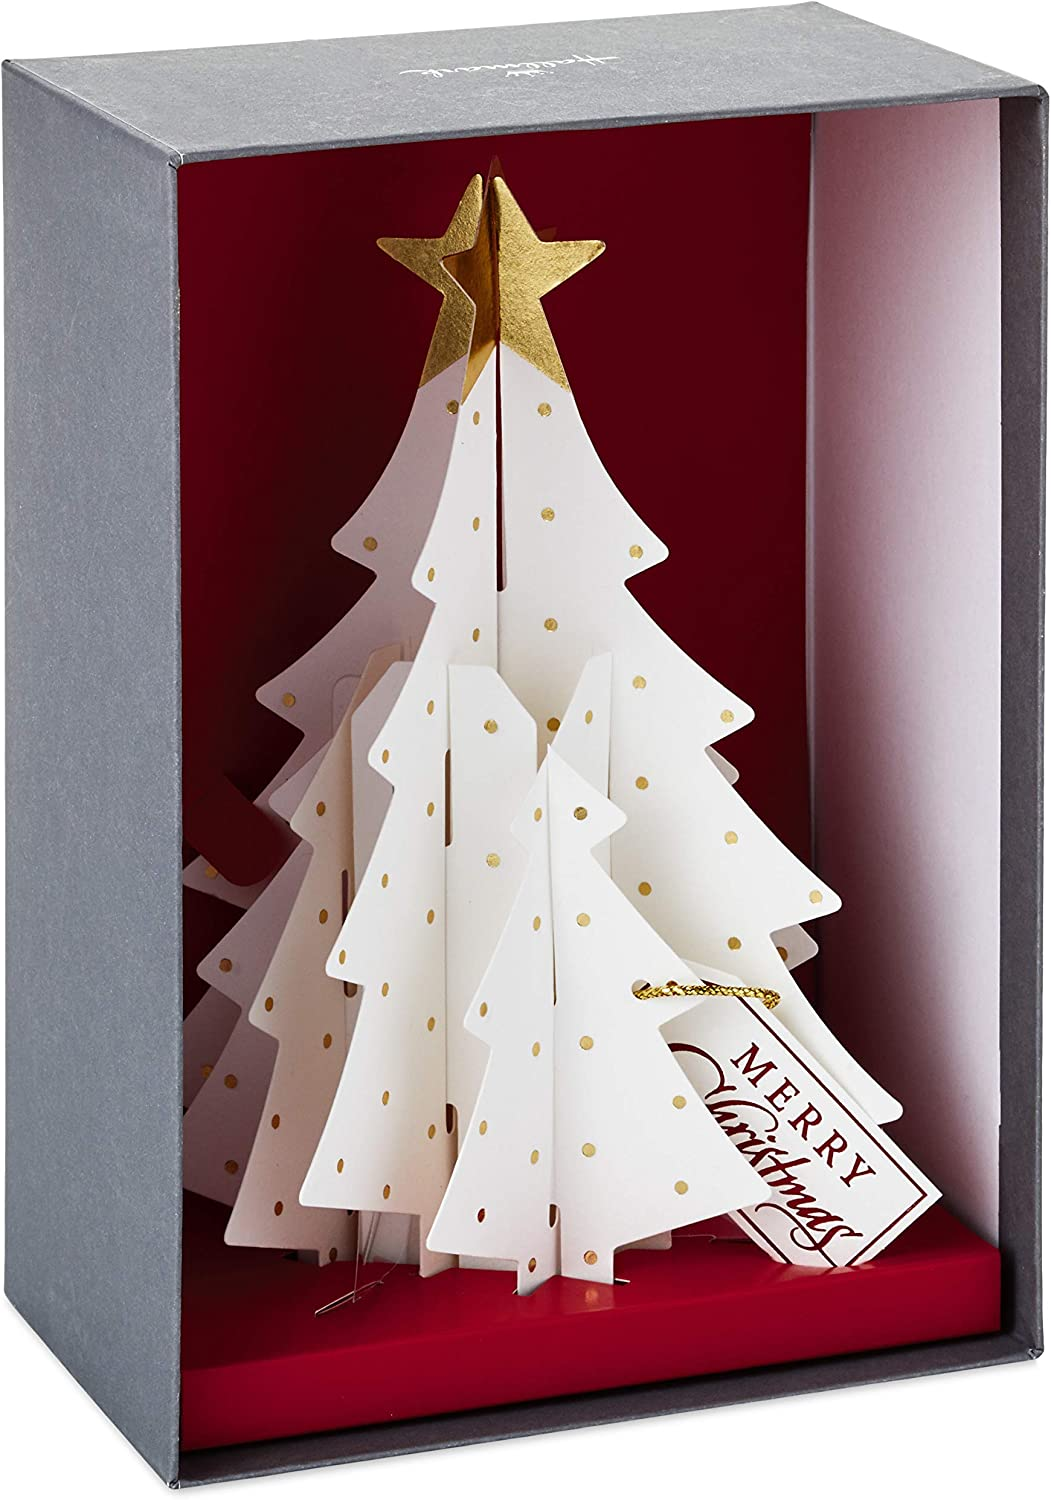 Amazon Com Hallmark Paper Craft Boxed Christmas Cards Pop Up Christmas Tree 5 Cards With Envelopes Office Products